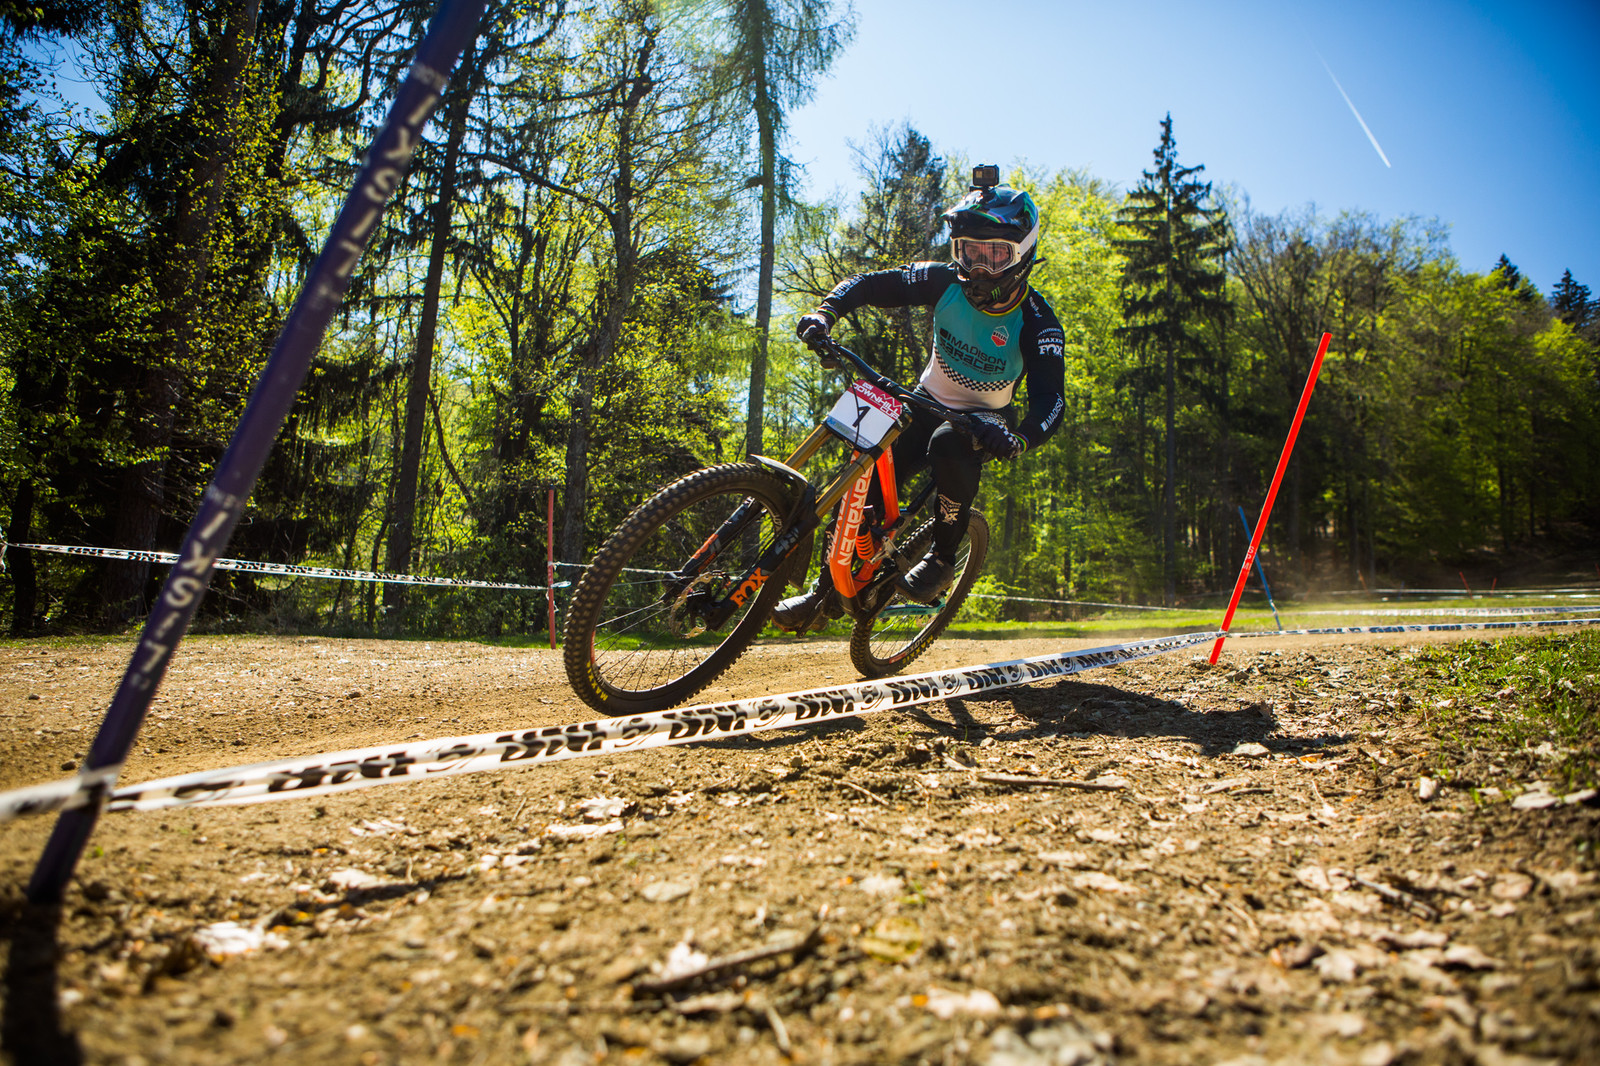 Danny Hart, 2nd Place - iXS Downhill Cup Maribor - Race Gallery - Mountain Biking Pictures - Vital MTB